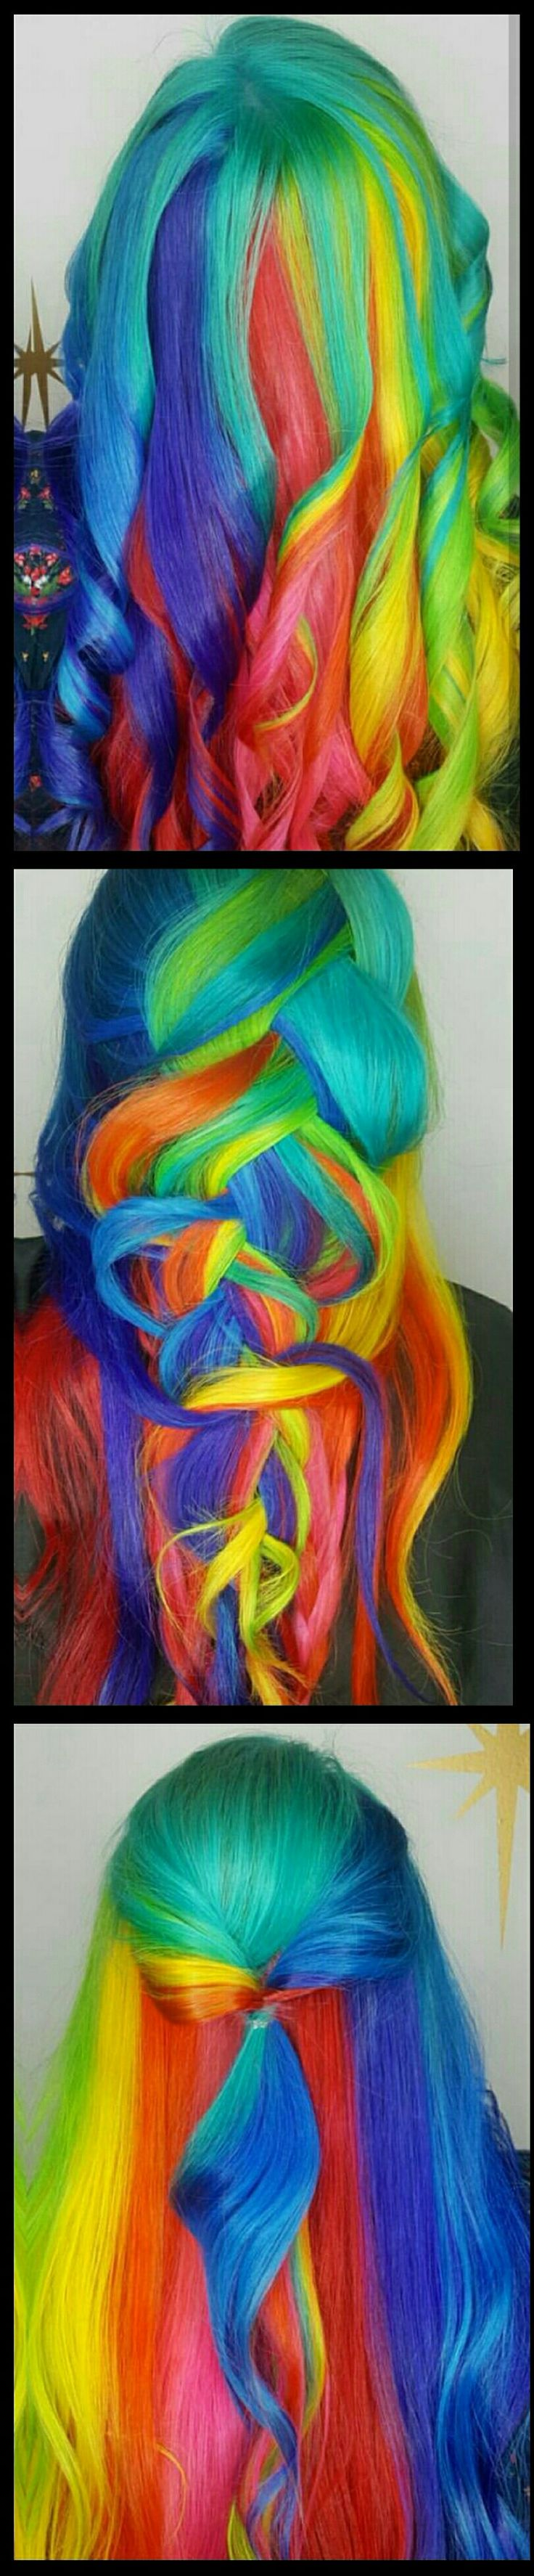 Rainbow dyed hair @hairbymisskellyo